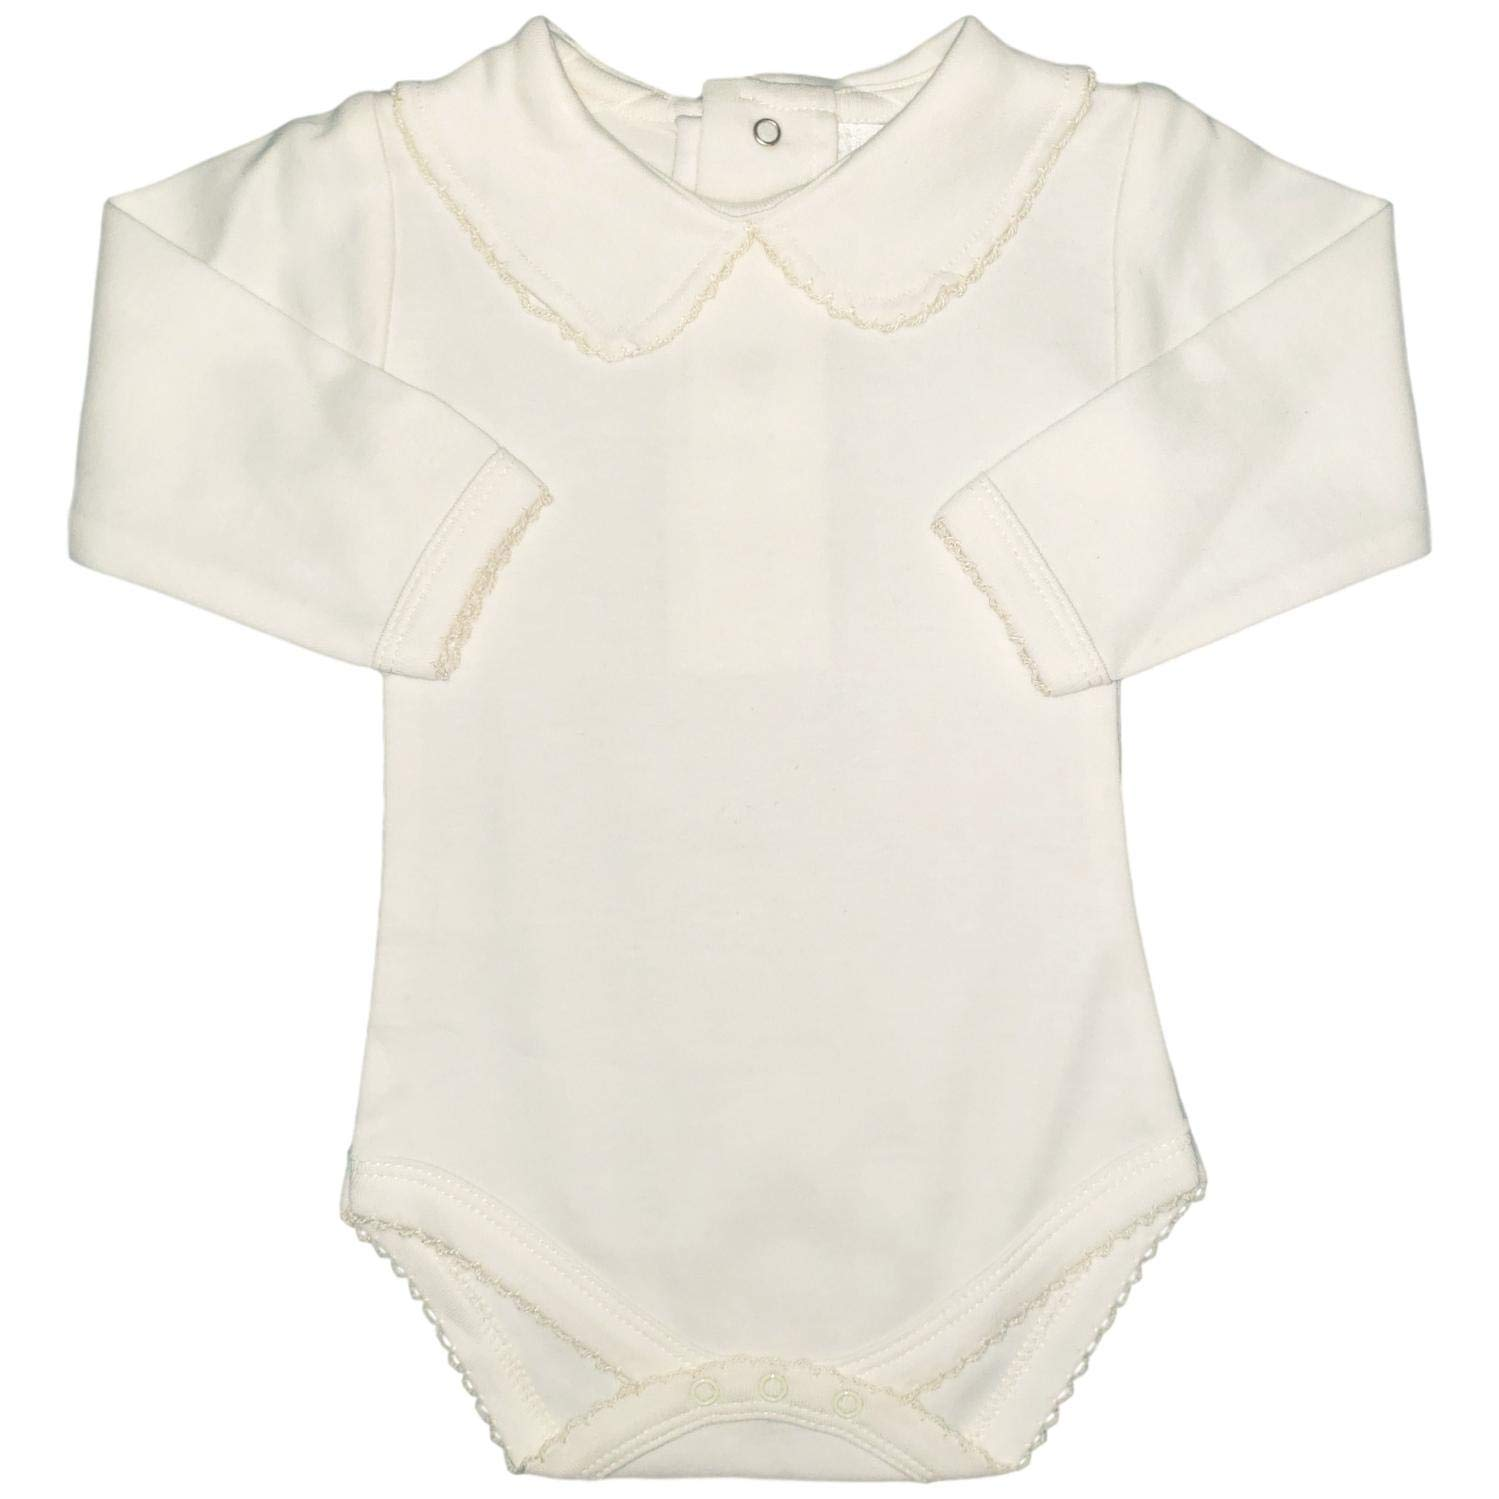 6ffc0eb8a Amazon.com: CARLINO Peter Pan Collared Bodysuit - Long Sleeve, Extra Soft,  6 Colors Available: Clothing